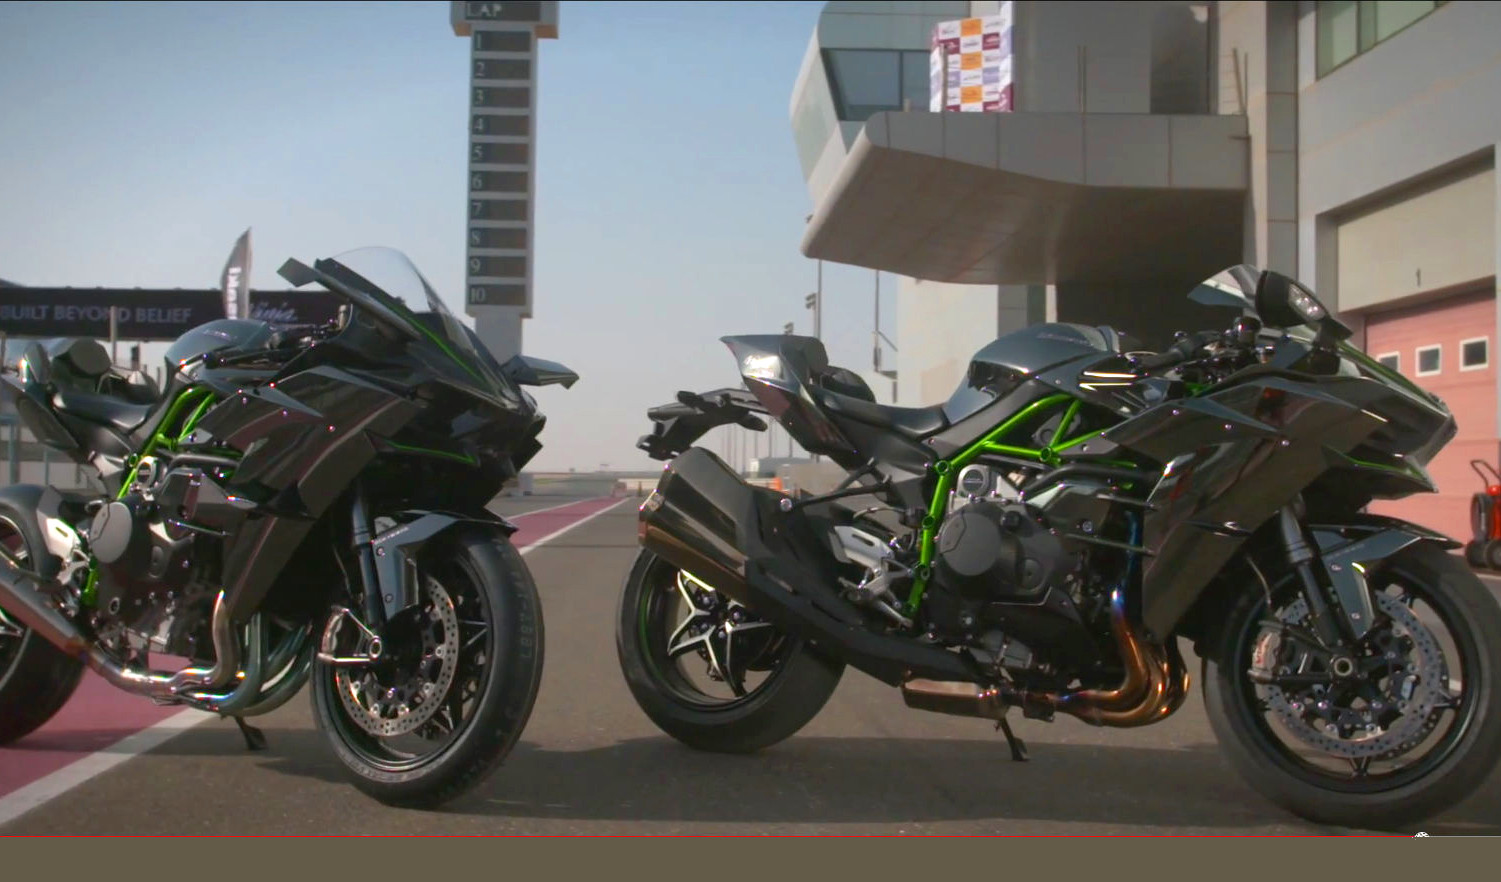 Kawasaki Ninja H2 And H2r Two Great Videos From The Qatar Launch